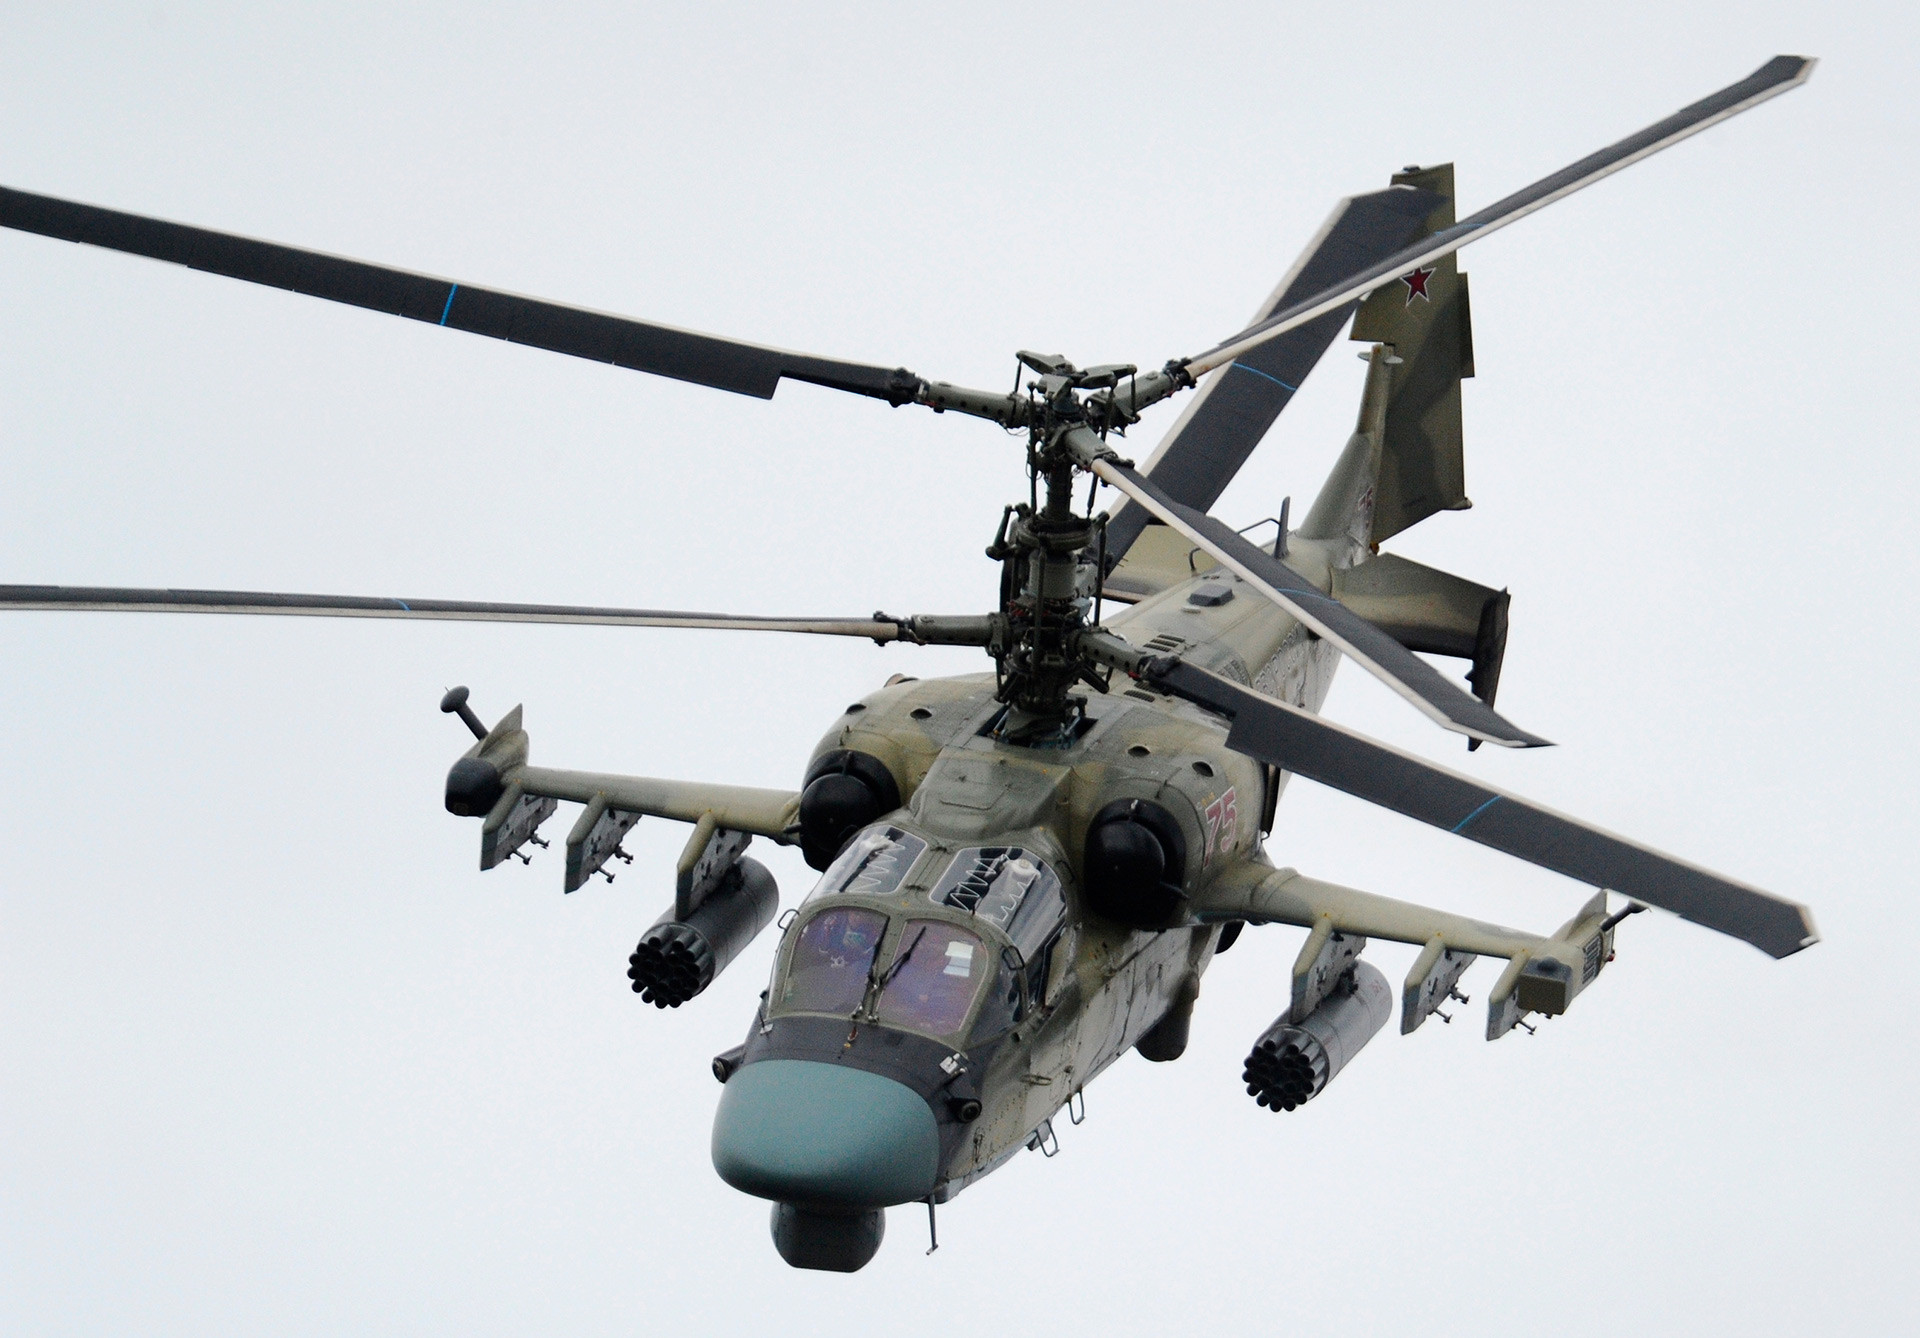 Ka-52 battle helicopter is one of most powerful additions to the Air Forces.